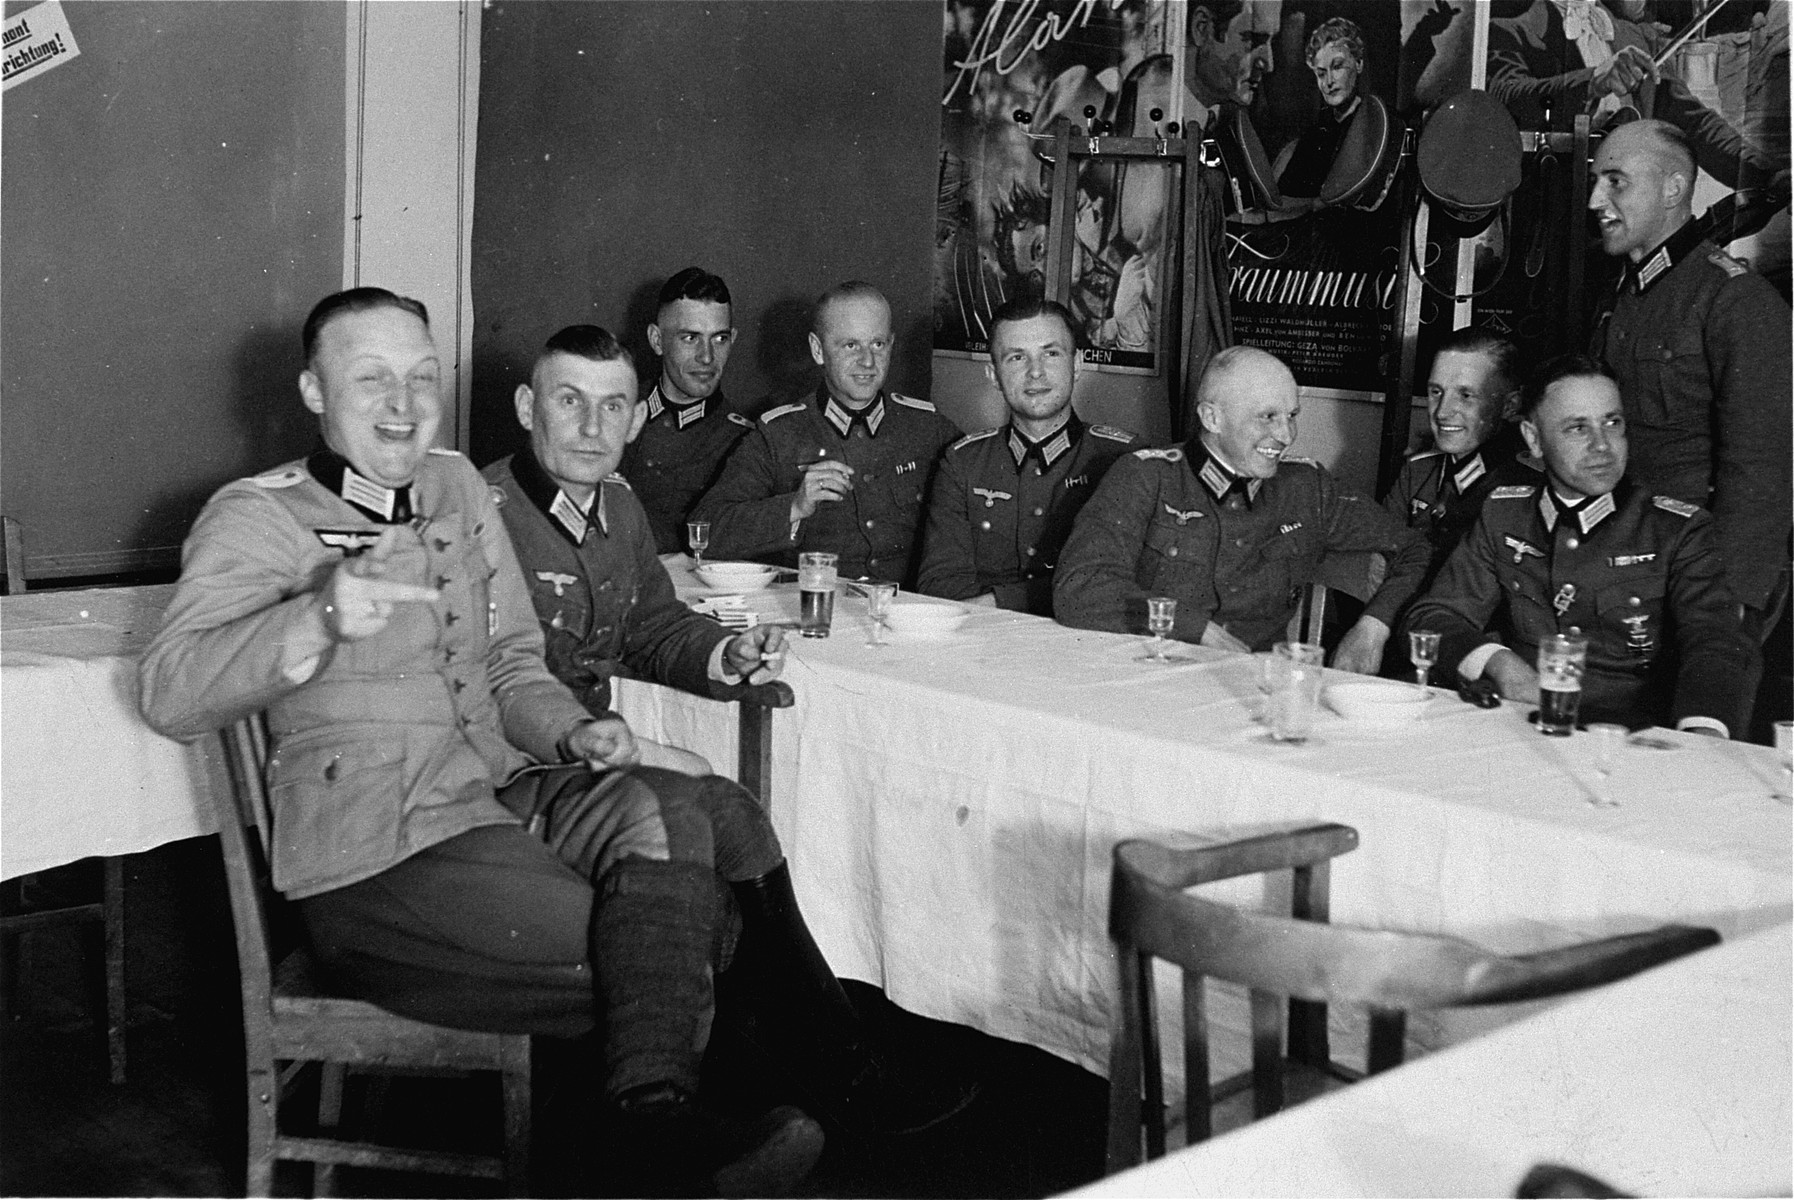 German officers at a celebration.